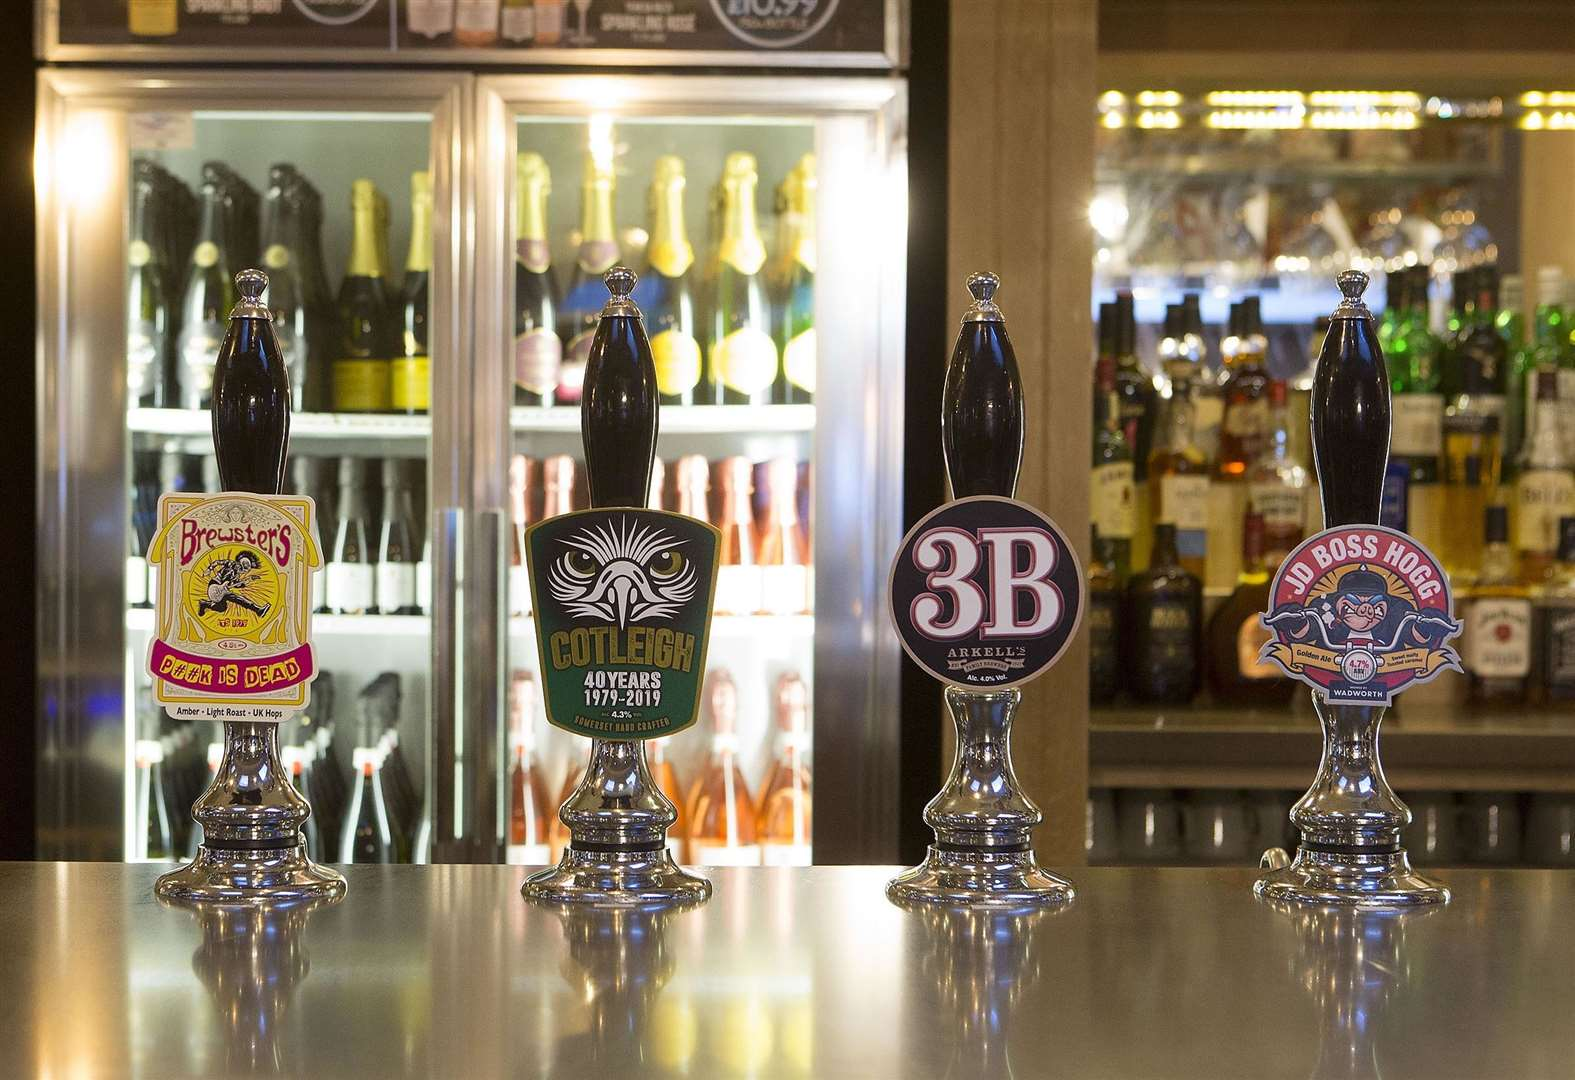 12-day beer festival at Port Jackson to mark Wetherspoon's 40th anniversary